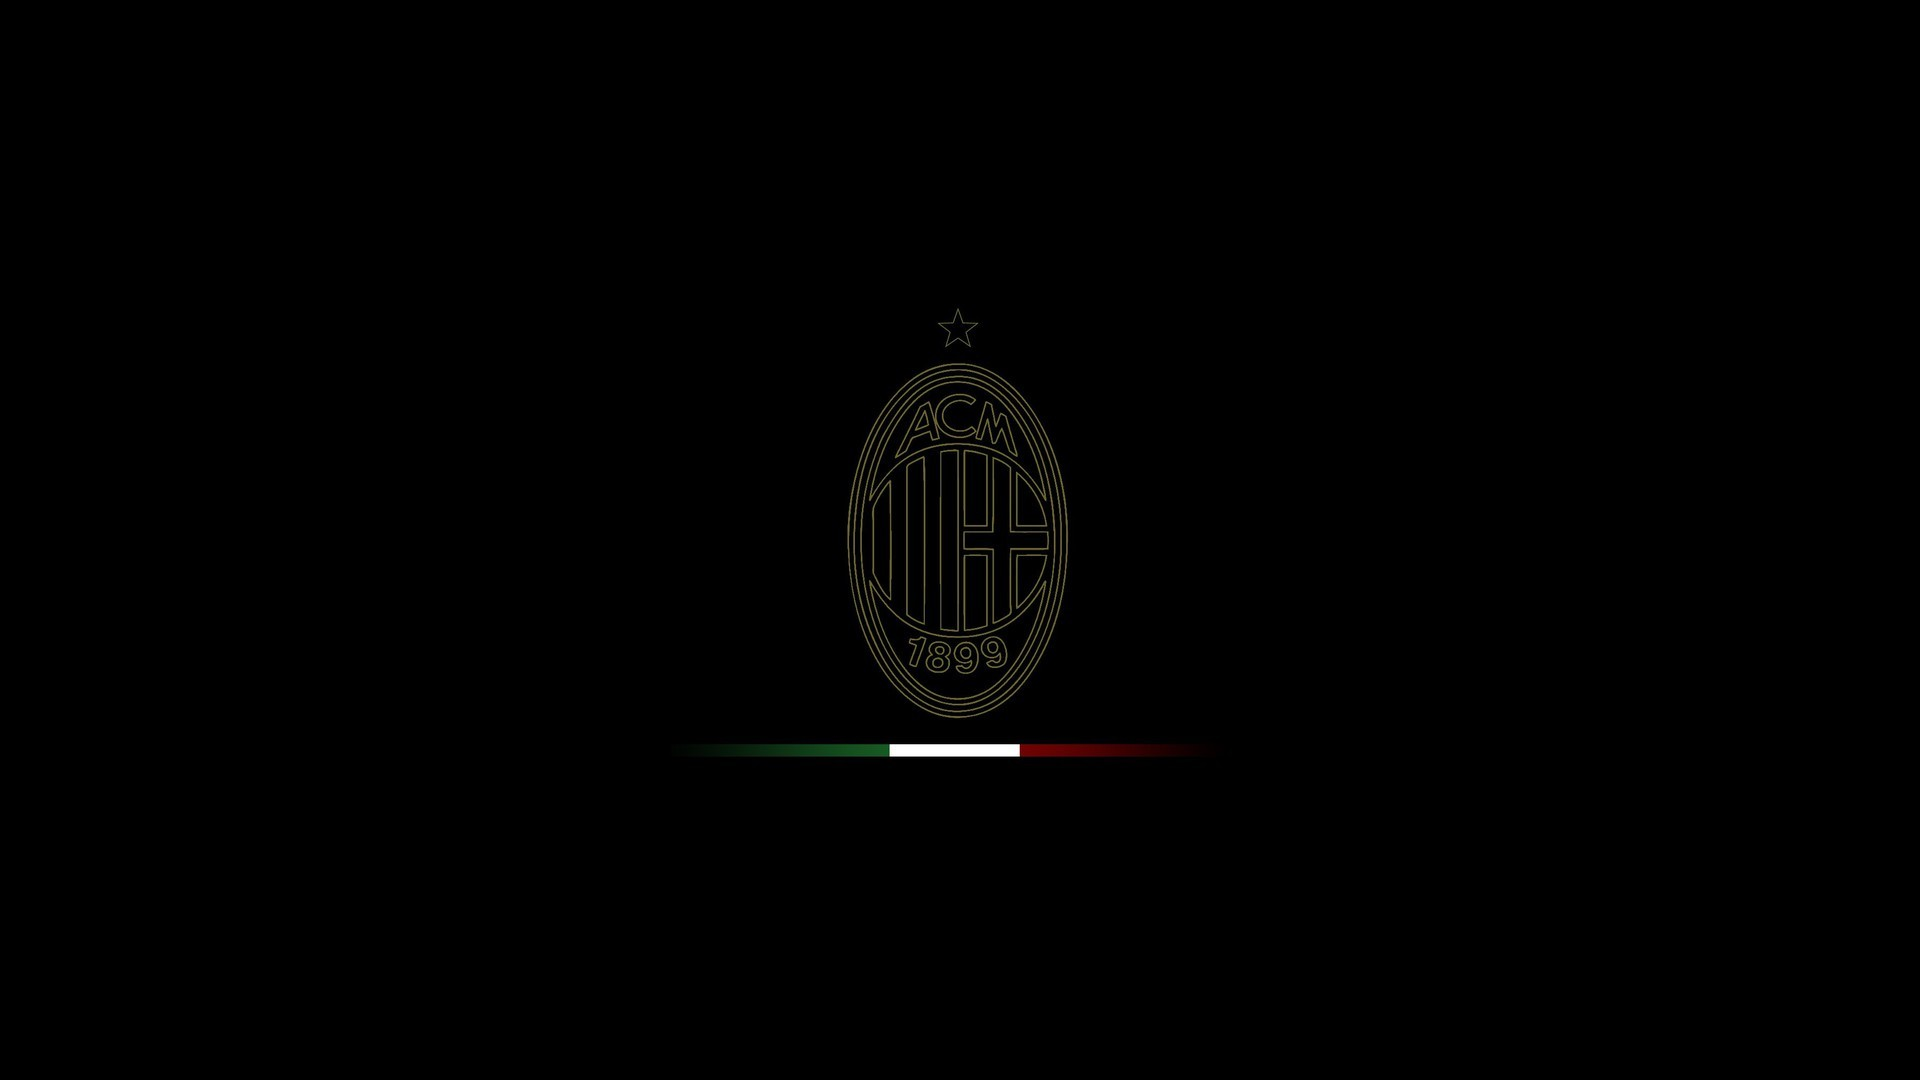 Ac milan wallpaper hd 66 images for Immagini desktop hd 1920x1080